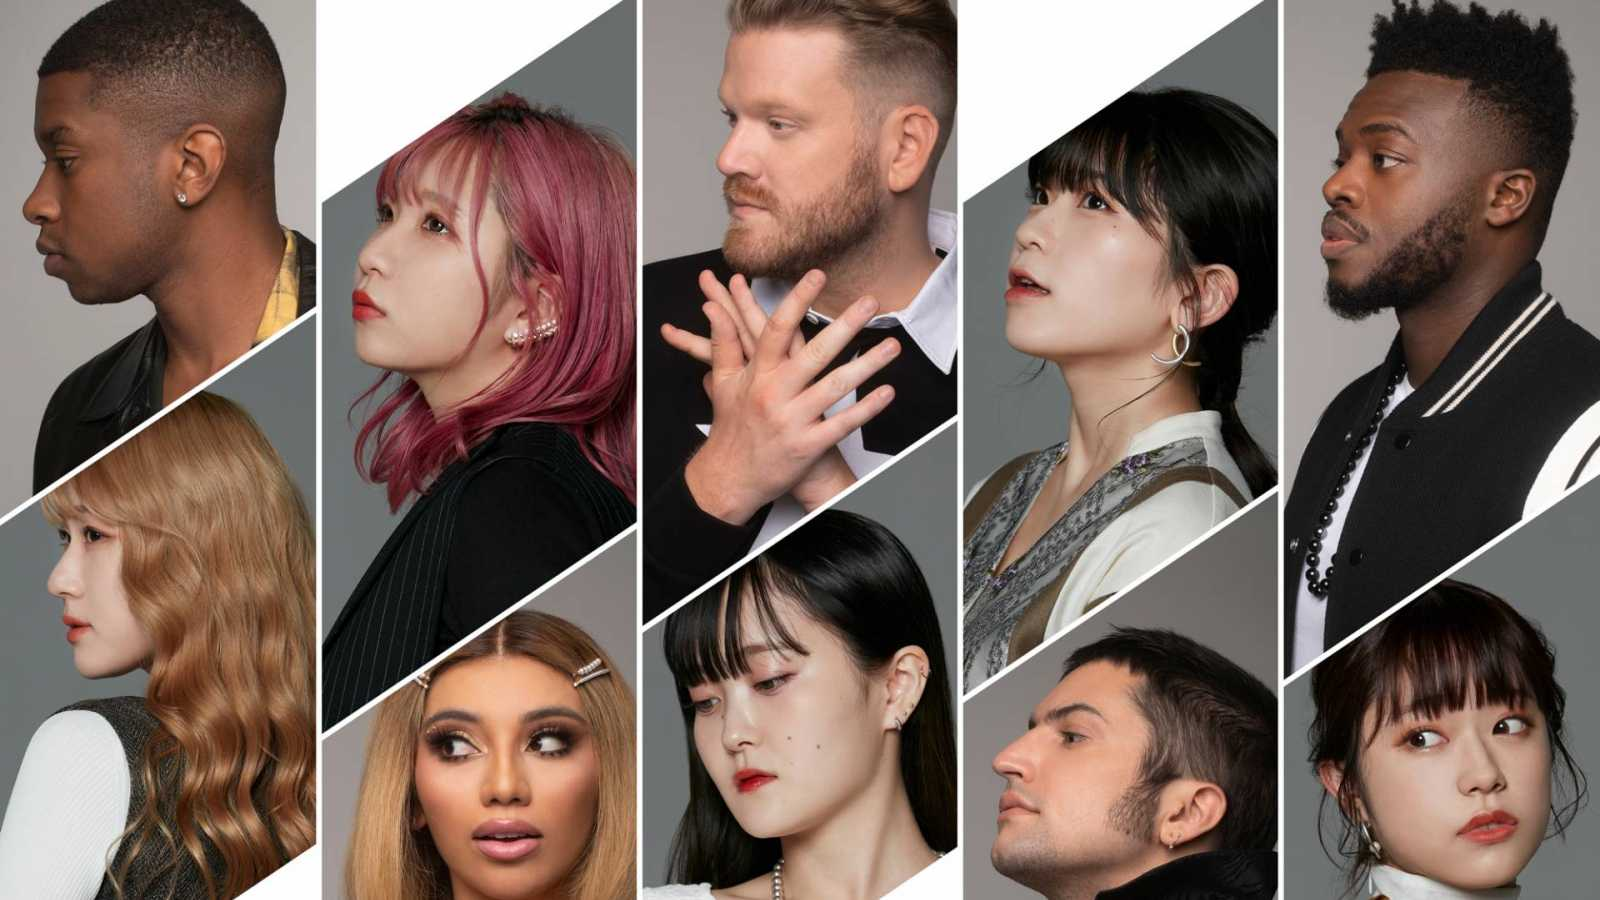 Little Glee Monster to Release New Single Featuring Pentatonix © Little Glee Monster x Pentatonix. All rights reserved.